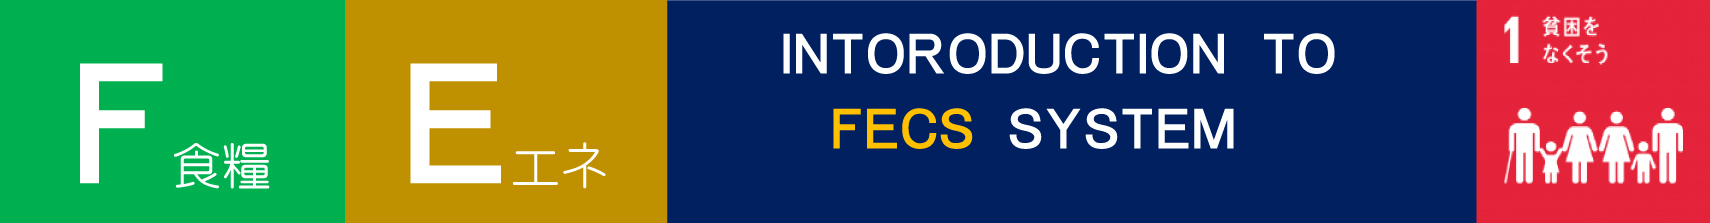 F食糧Eエネ INTORODUCTION TO FECS SYSTEM